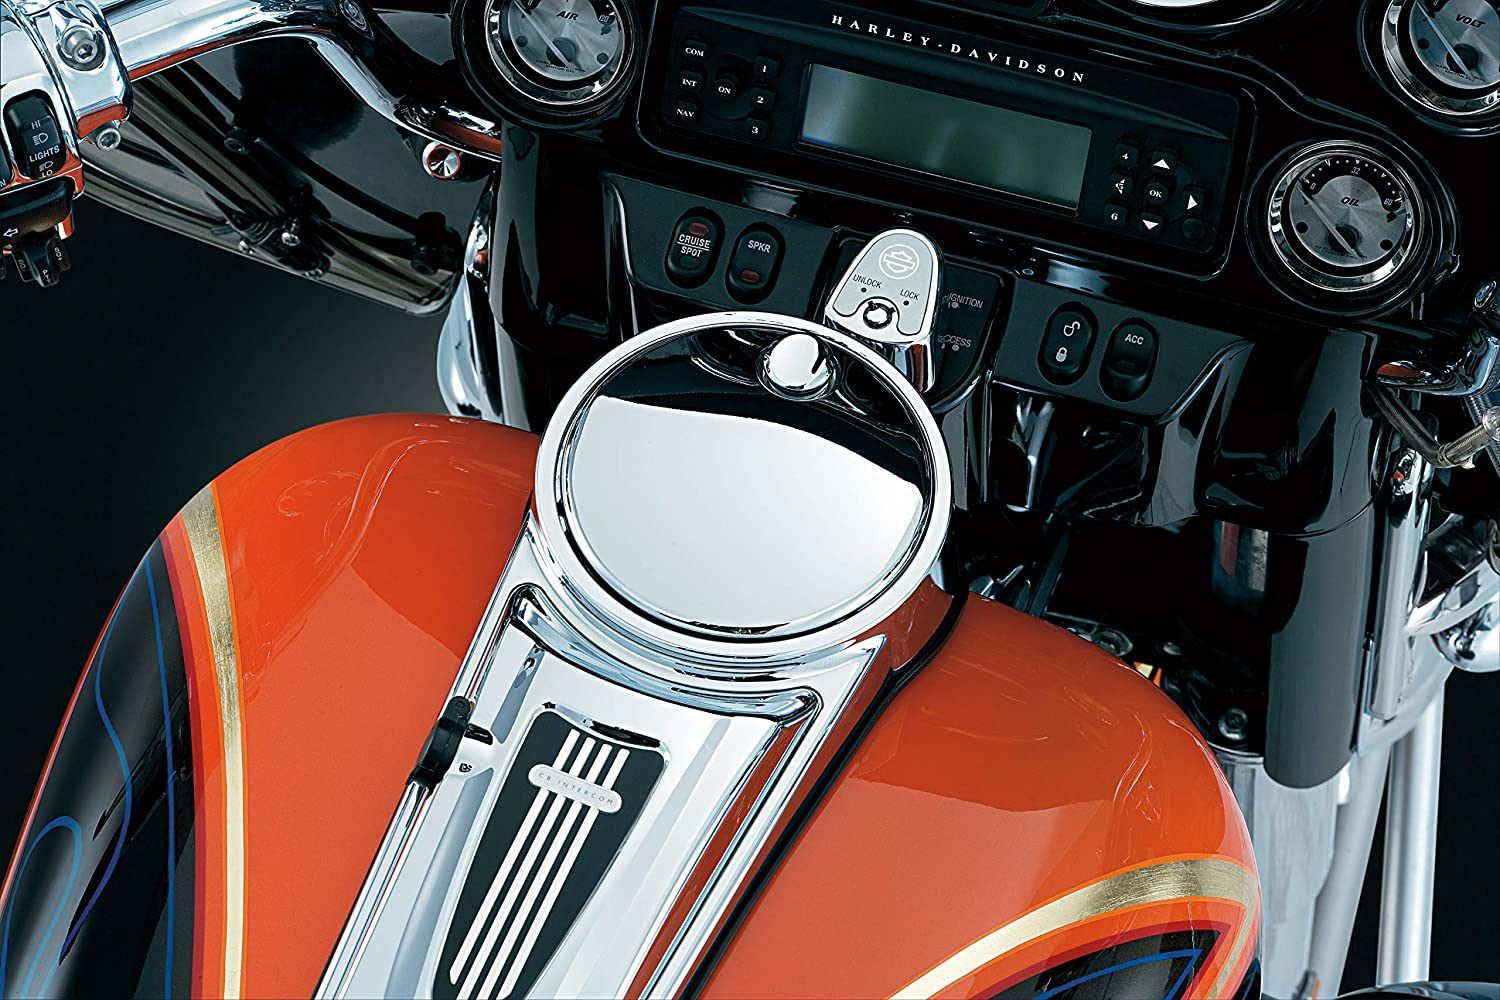 Kuryakyn 1467 Motorcycle Accessory Push Button Fuel Door//Panel Latch for 1992-2019 Harley-Davidson Motorcycles Chrome